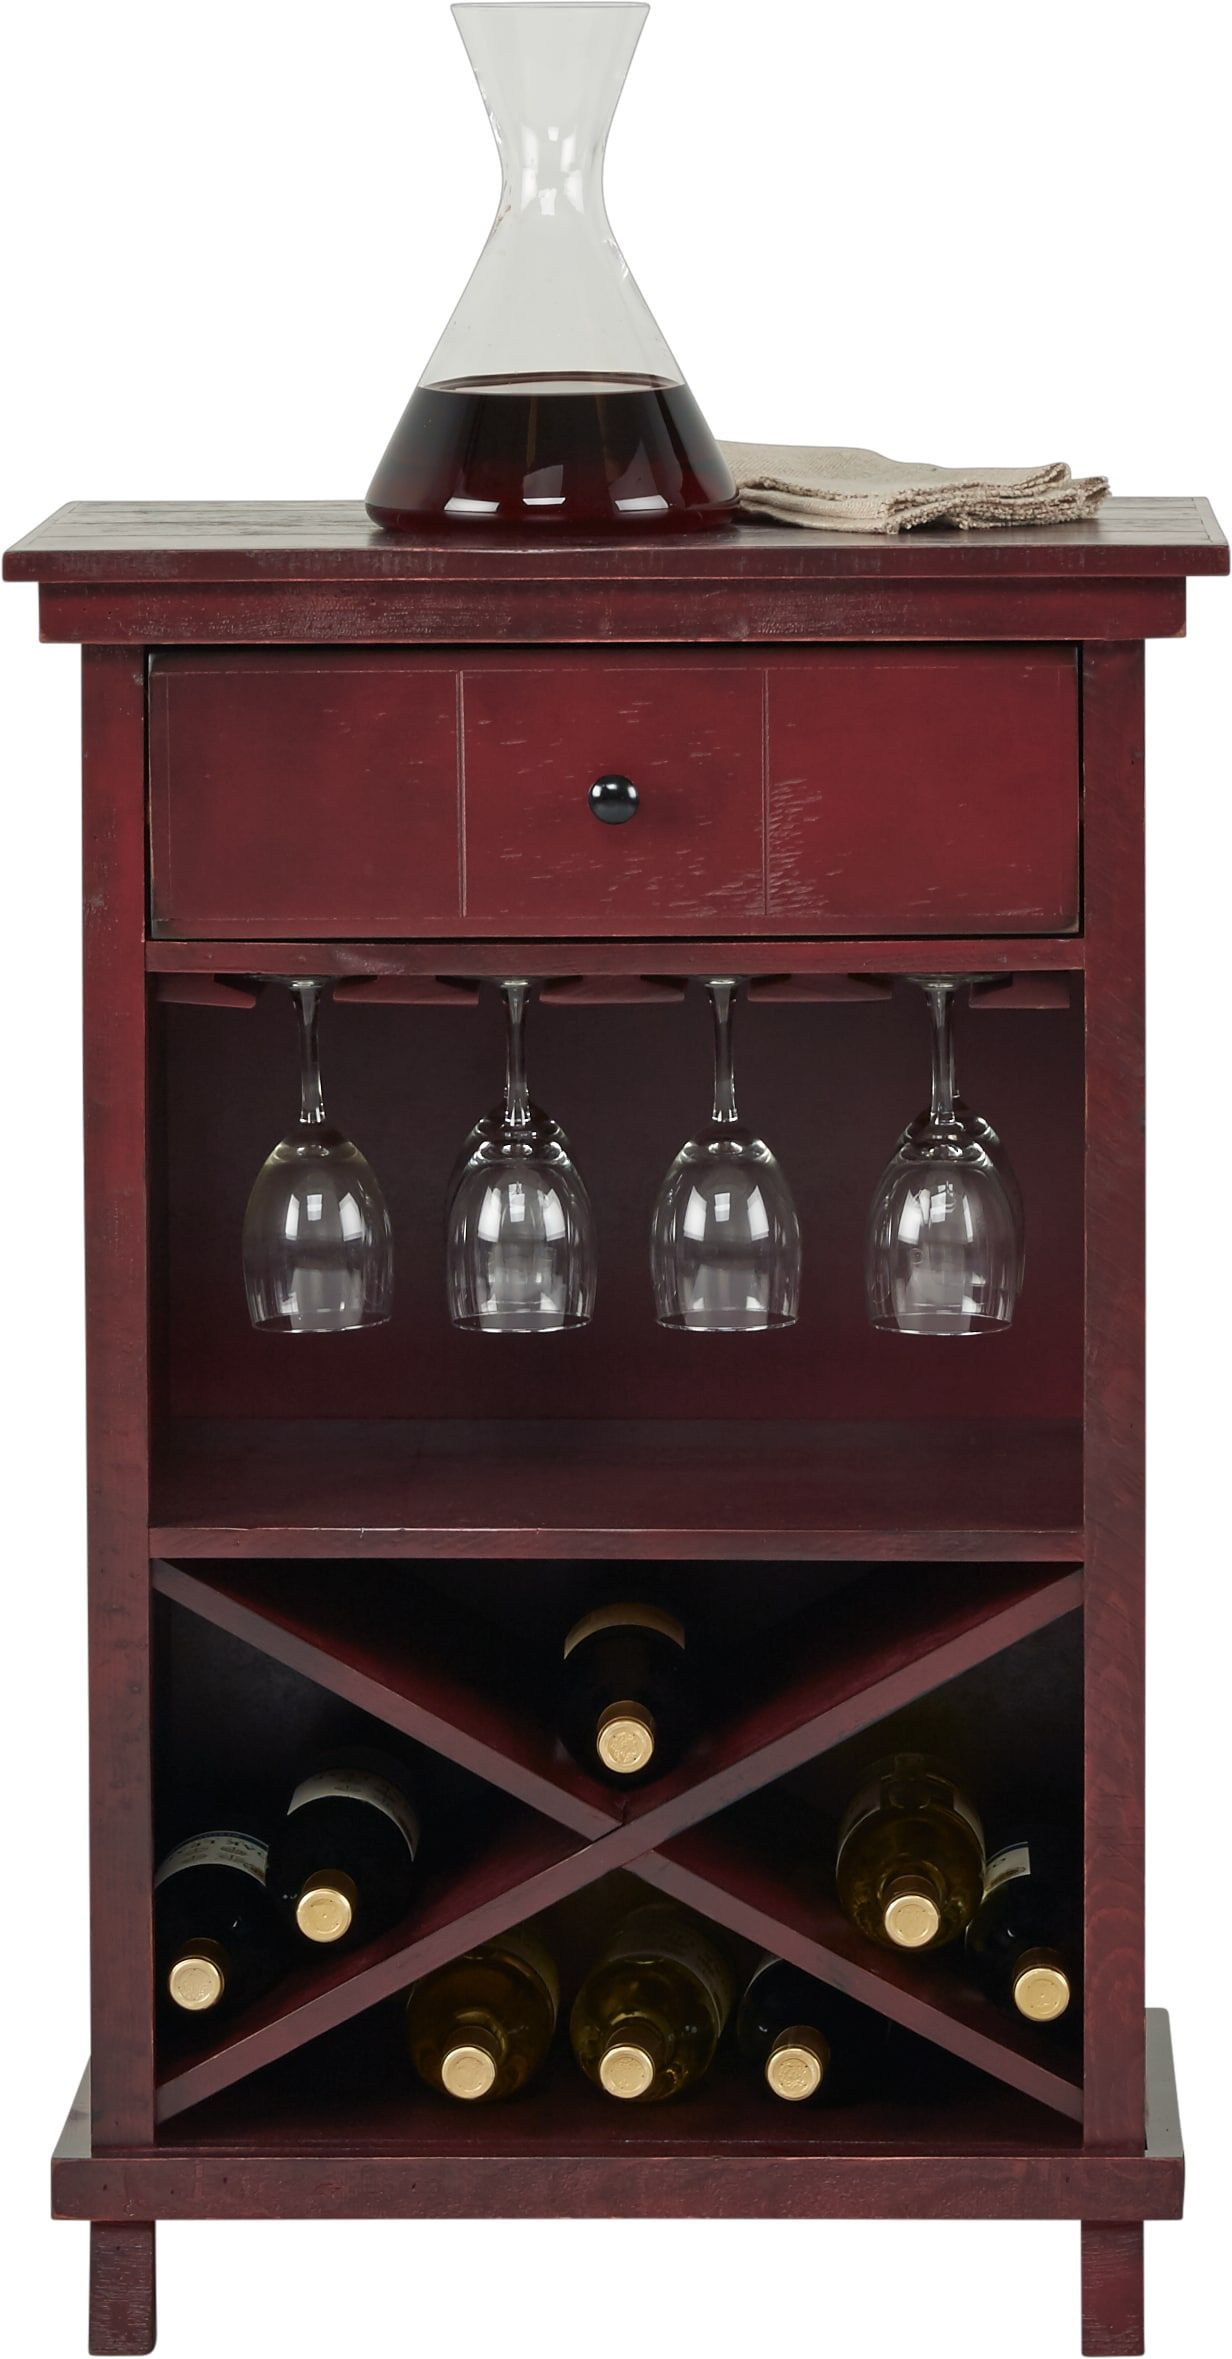 Red Home Accents Cabinets Havenwood Red Wine Cabinet Redhome Accentscabinets Wine Cabinets Home Accents Cabinet